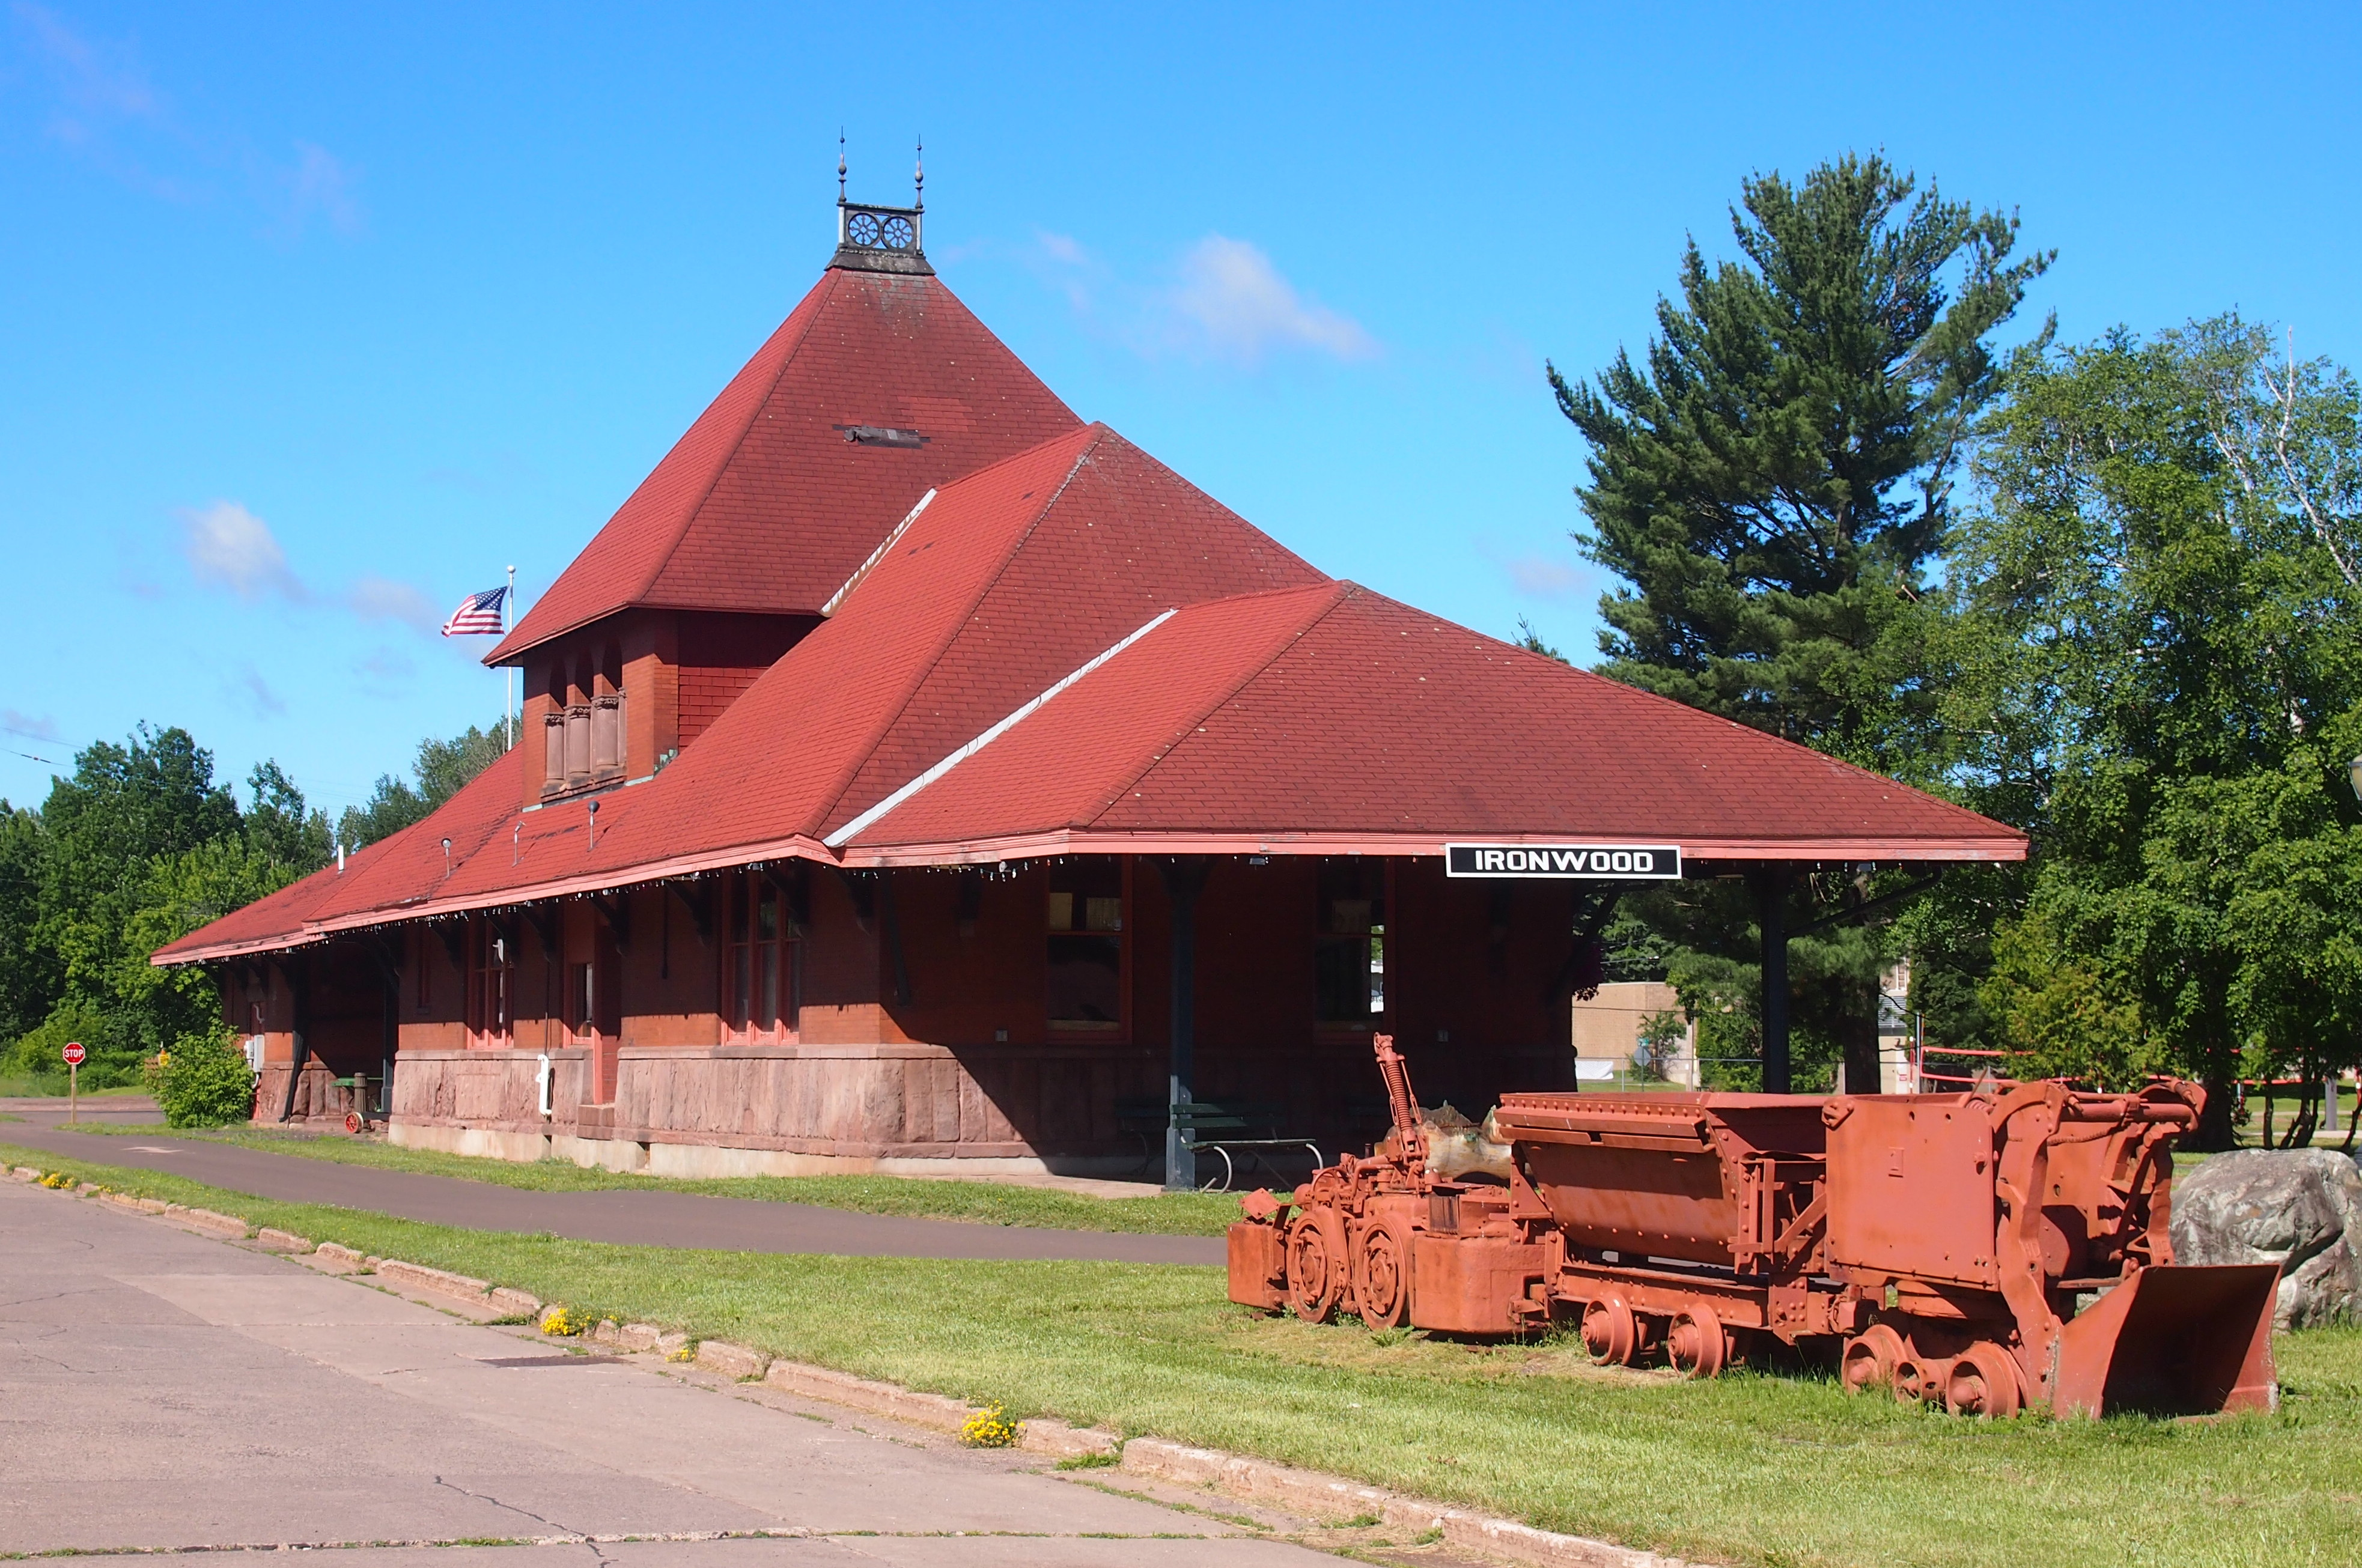 Ironwood, Michigan Depot